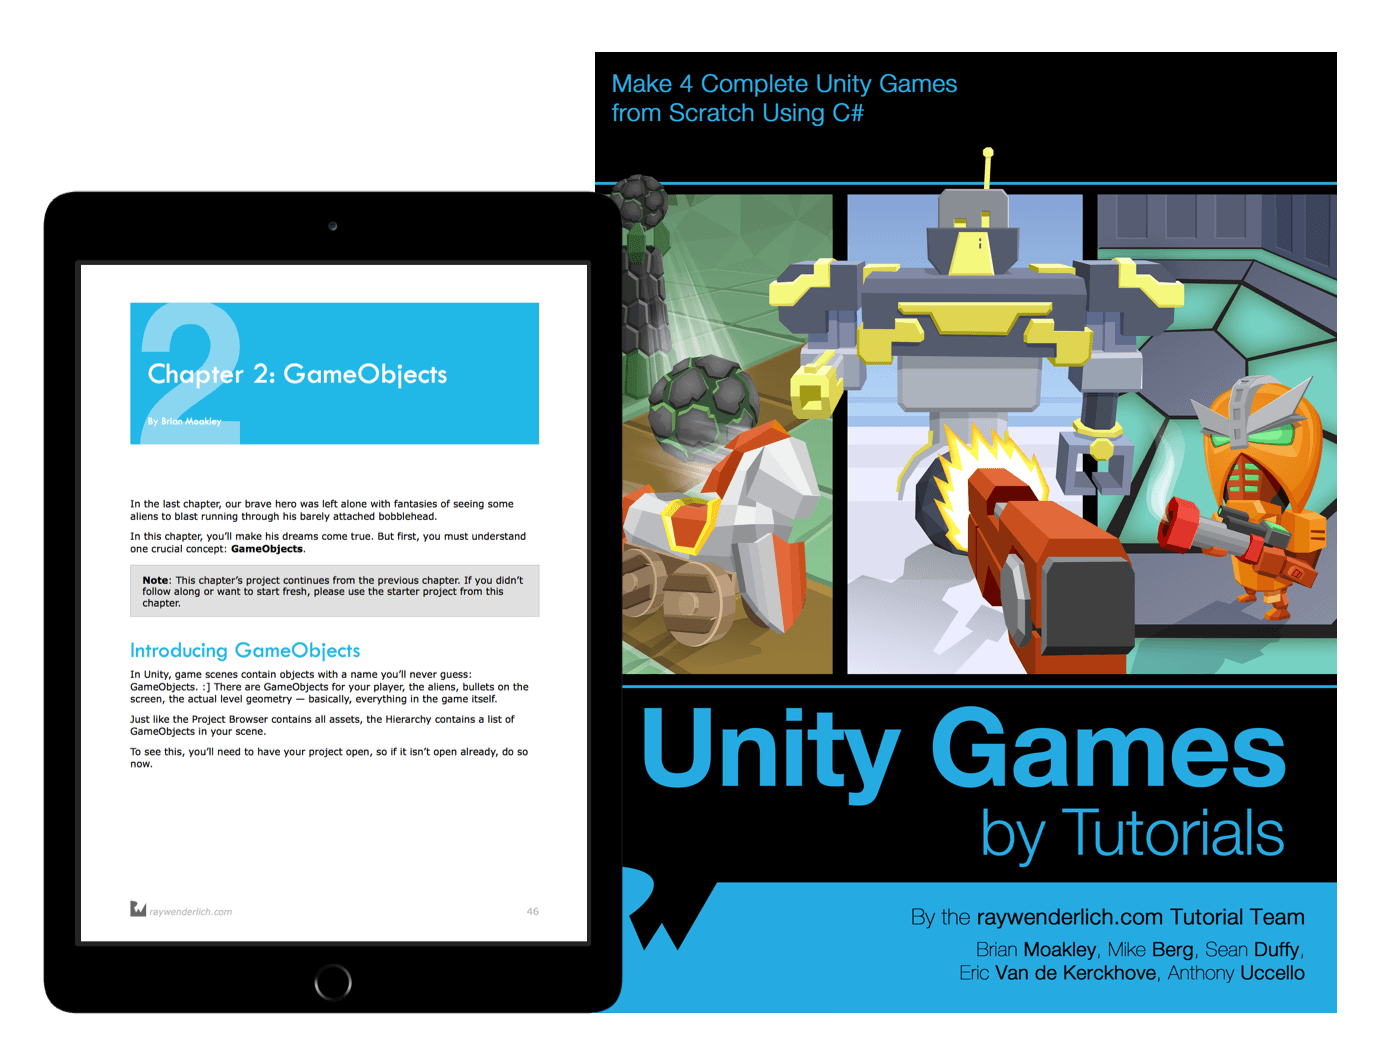 Unity Games by Tutorials book cover